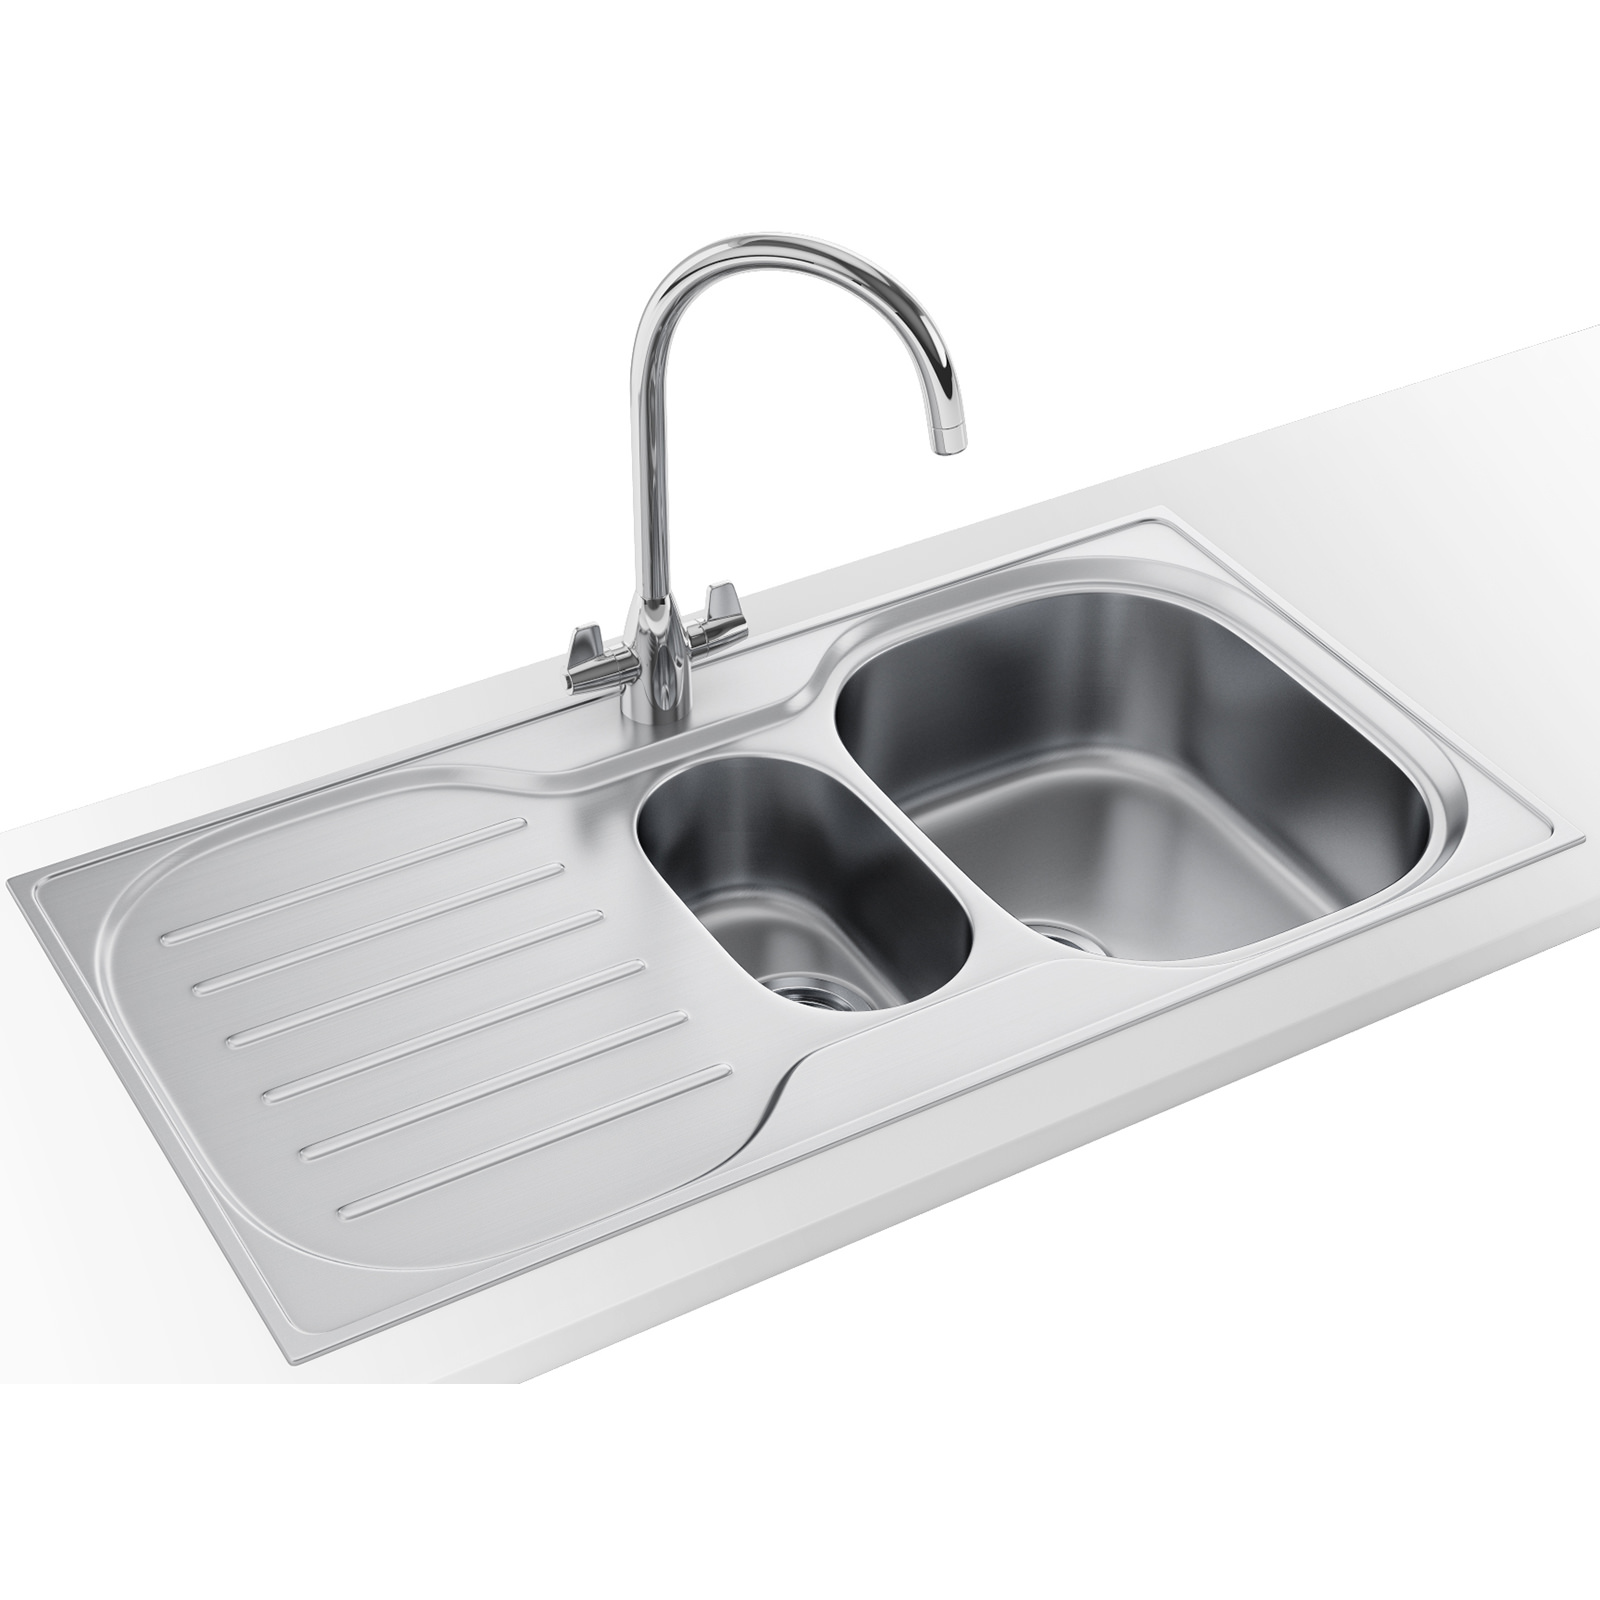 Franke Compact Plus Crx P 651 Dp Stainless Steel Sink